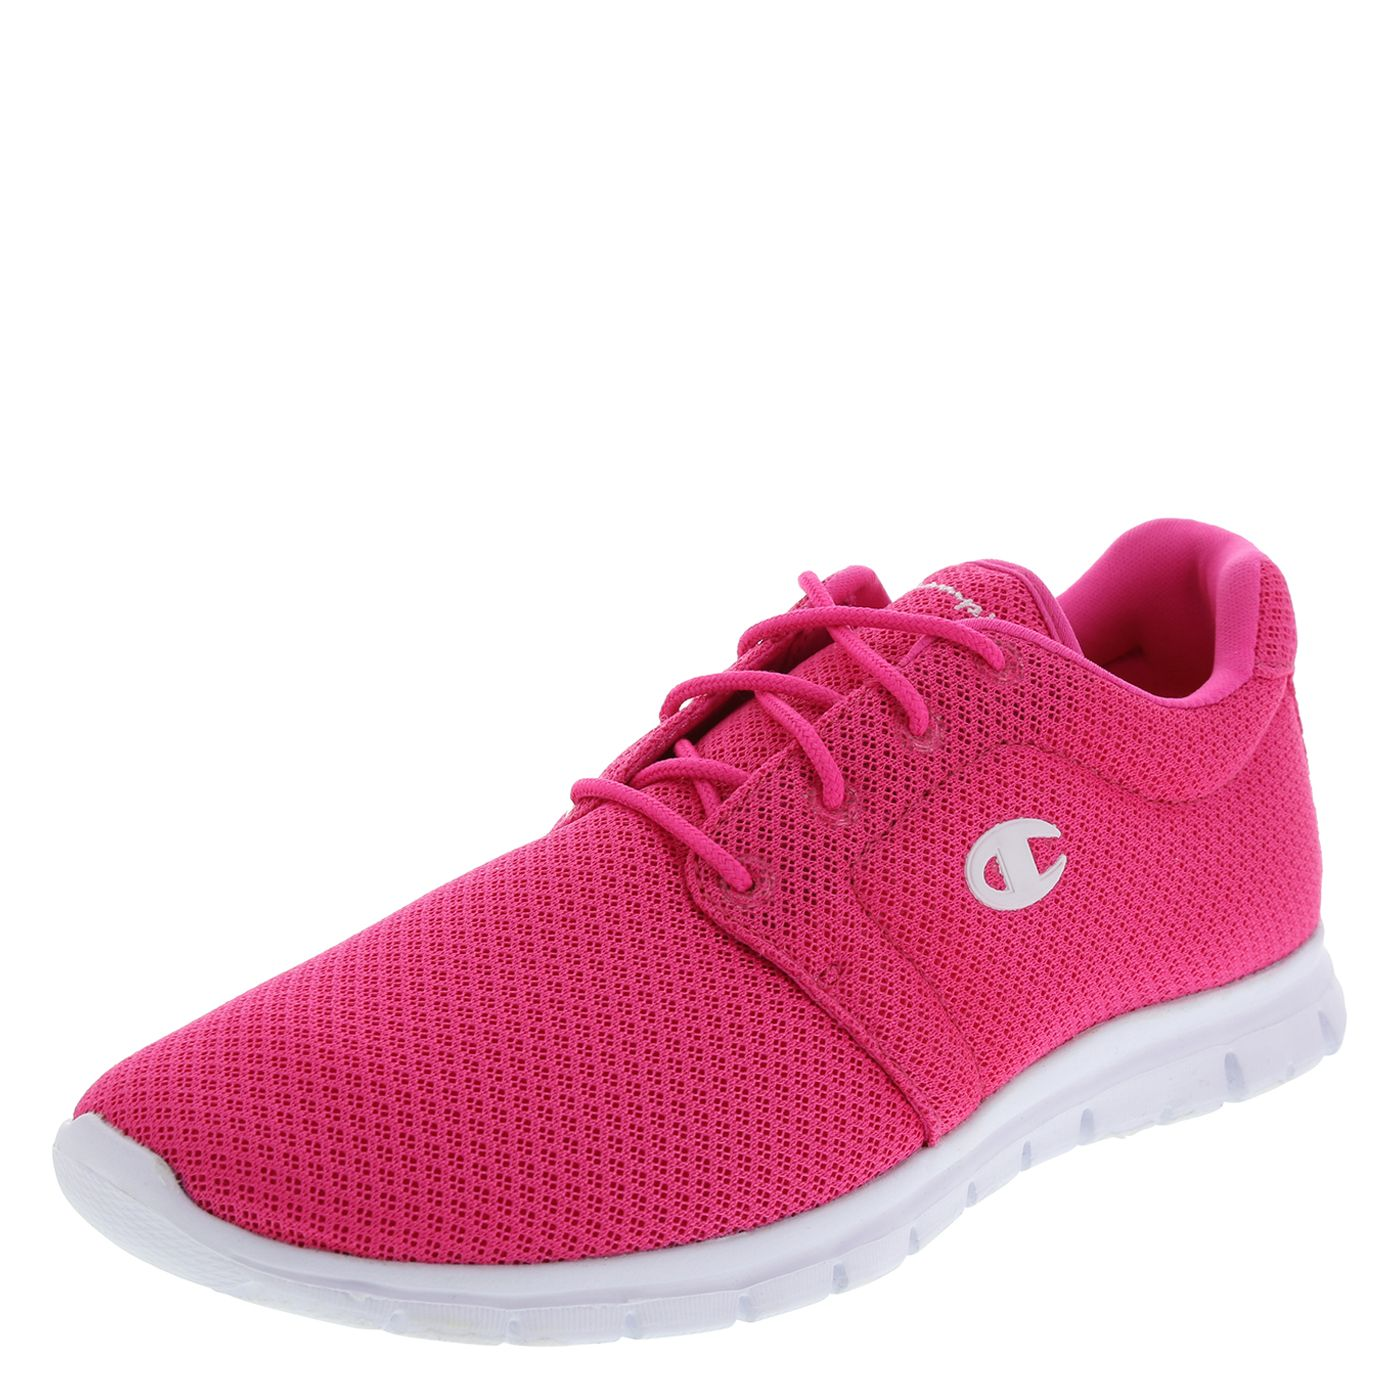 41298f8854774b payless.com Champion Women s Women s Ingage Runner (Color - Pink). Find  this Pin and more on Pink Shoes! ...